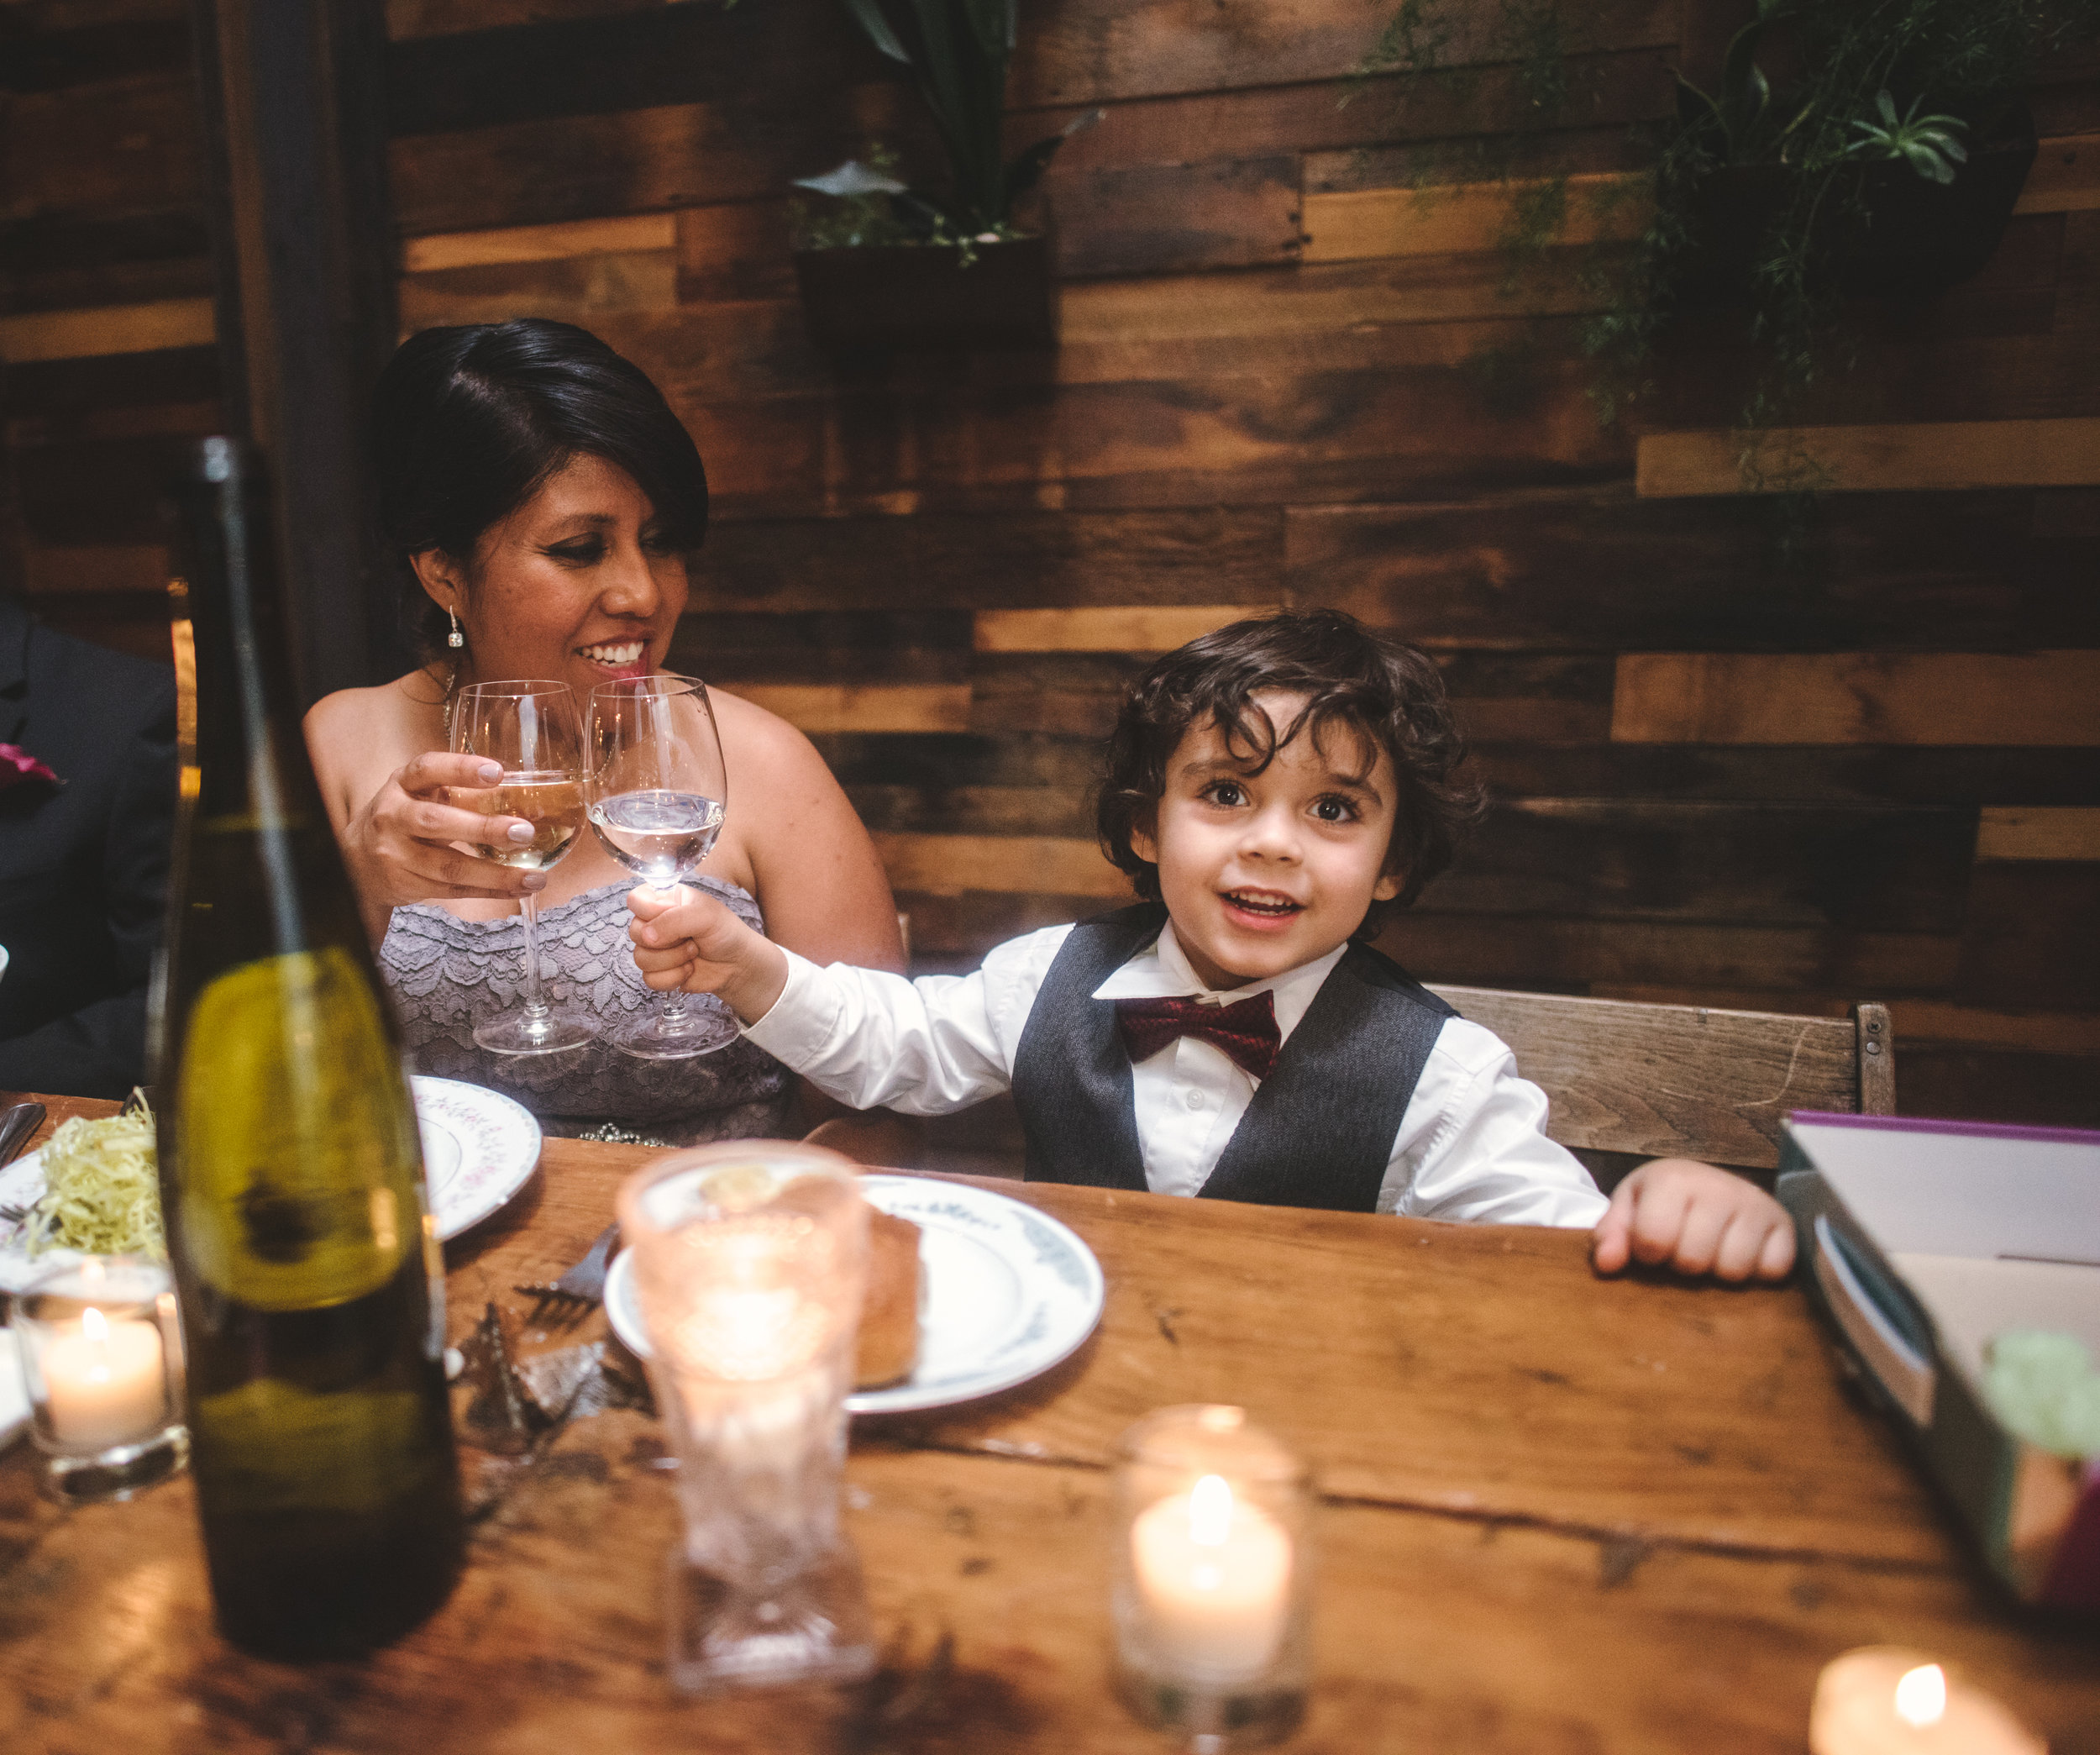 BROOKLYN WINERY WEDDING - TWOTWENTY by CHI-CHI AGBIM-363.jpg